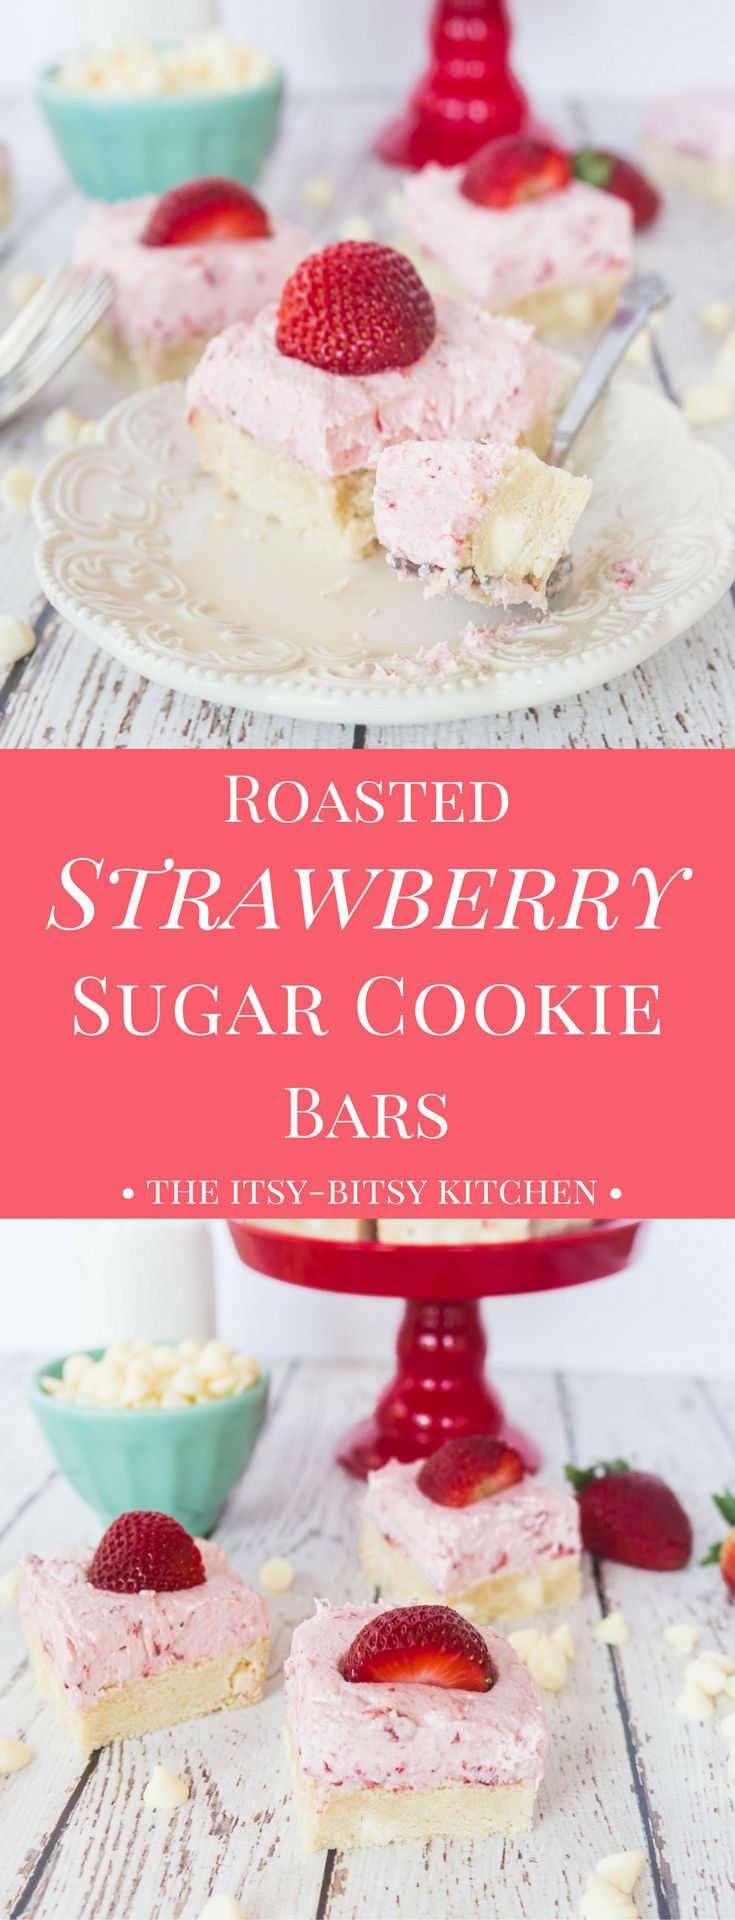 With a chewy cookie base and a creamy frosting on top, these sugar cookie bars with roasted strawberry buttercream are the perfect dessert to end any summer meal.